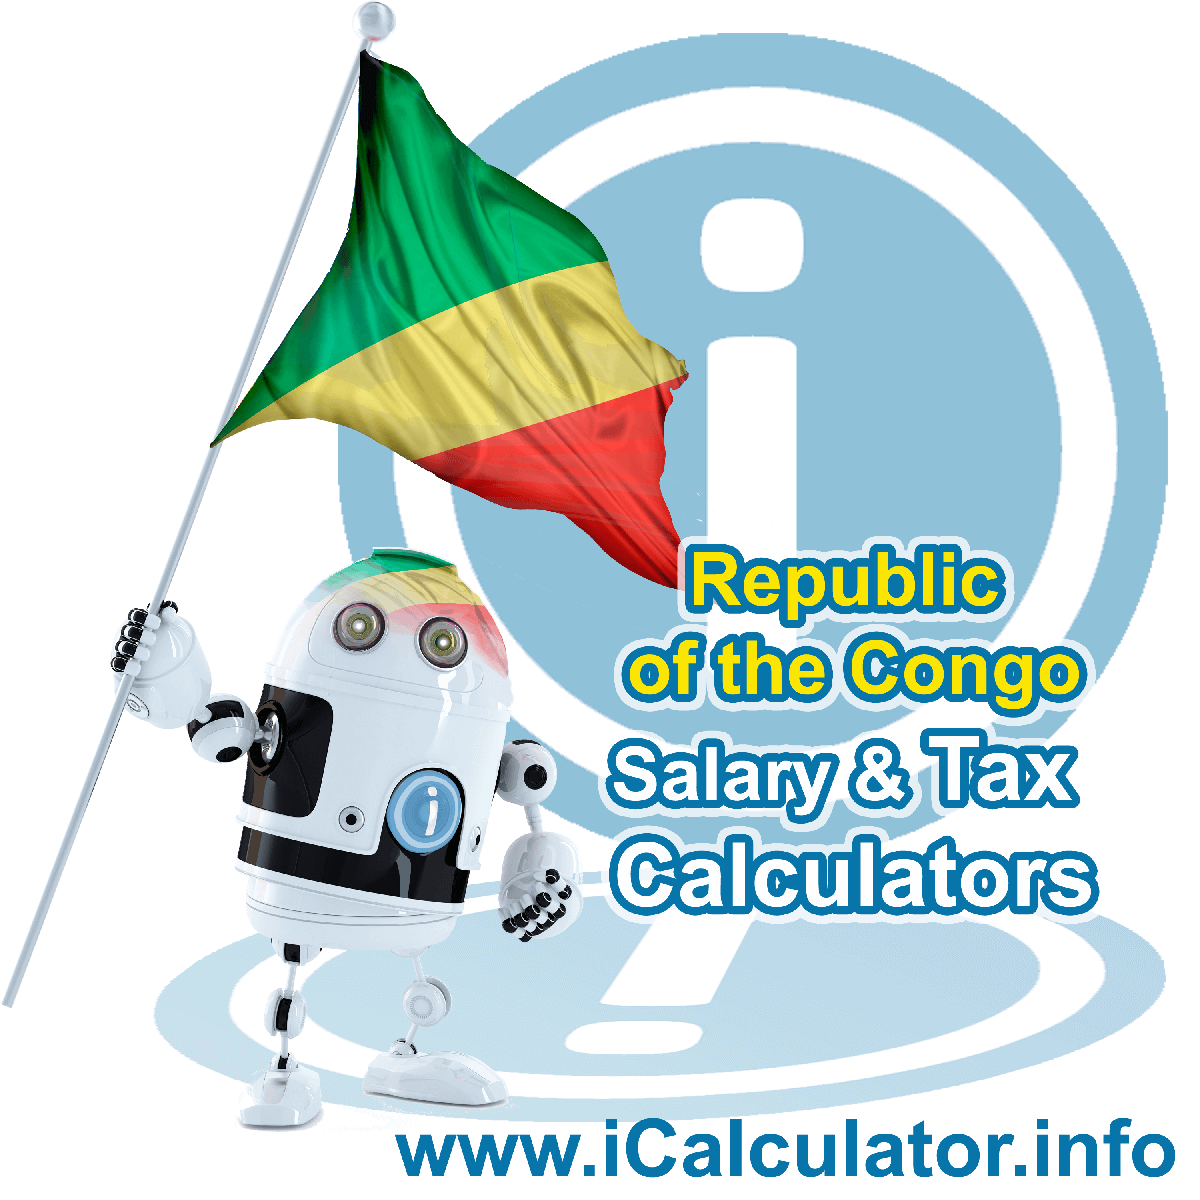 Congo Wage Calculator. This image shows the Congo flag and information relating to the tax formula for the Congo Tax Calculator